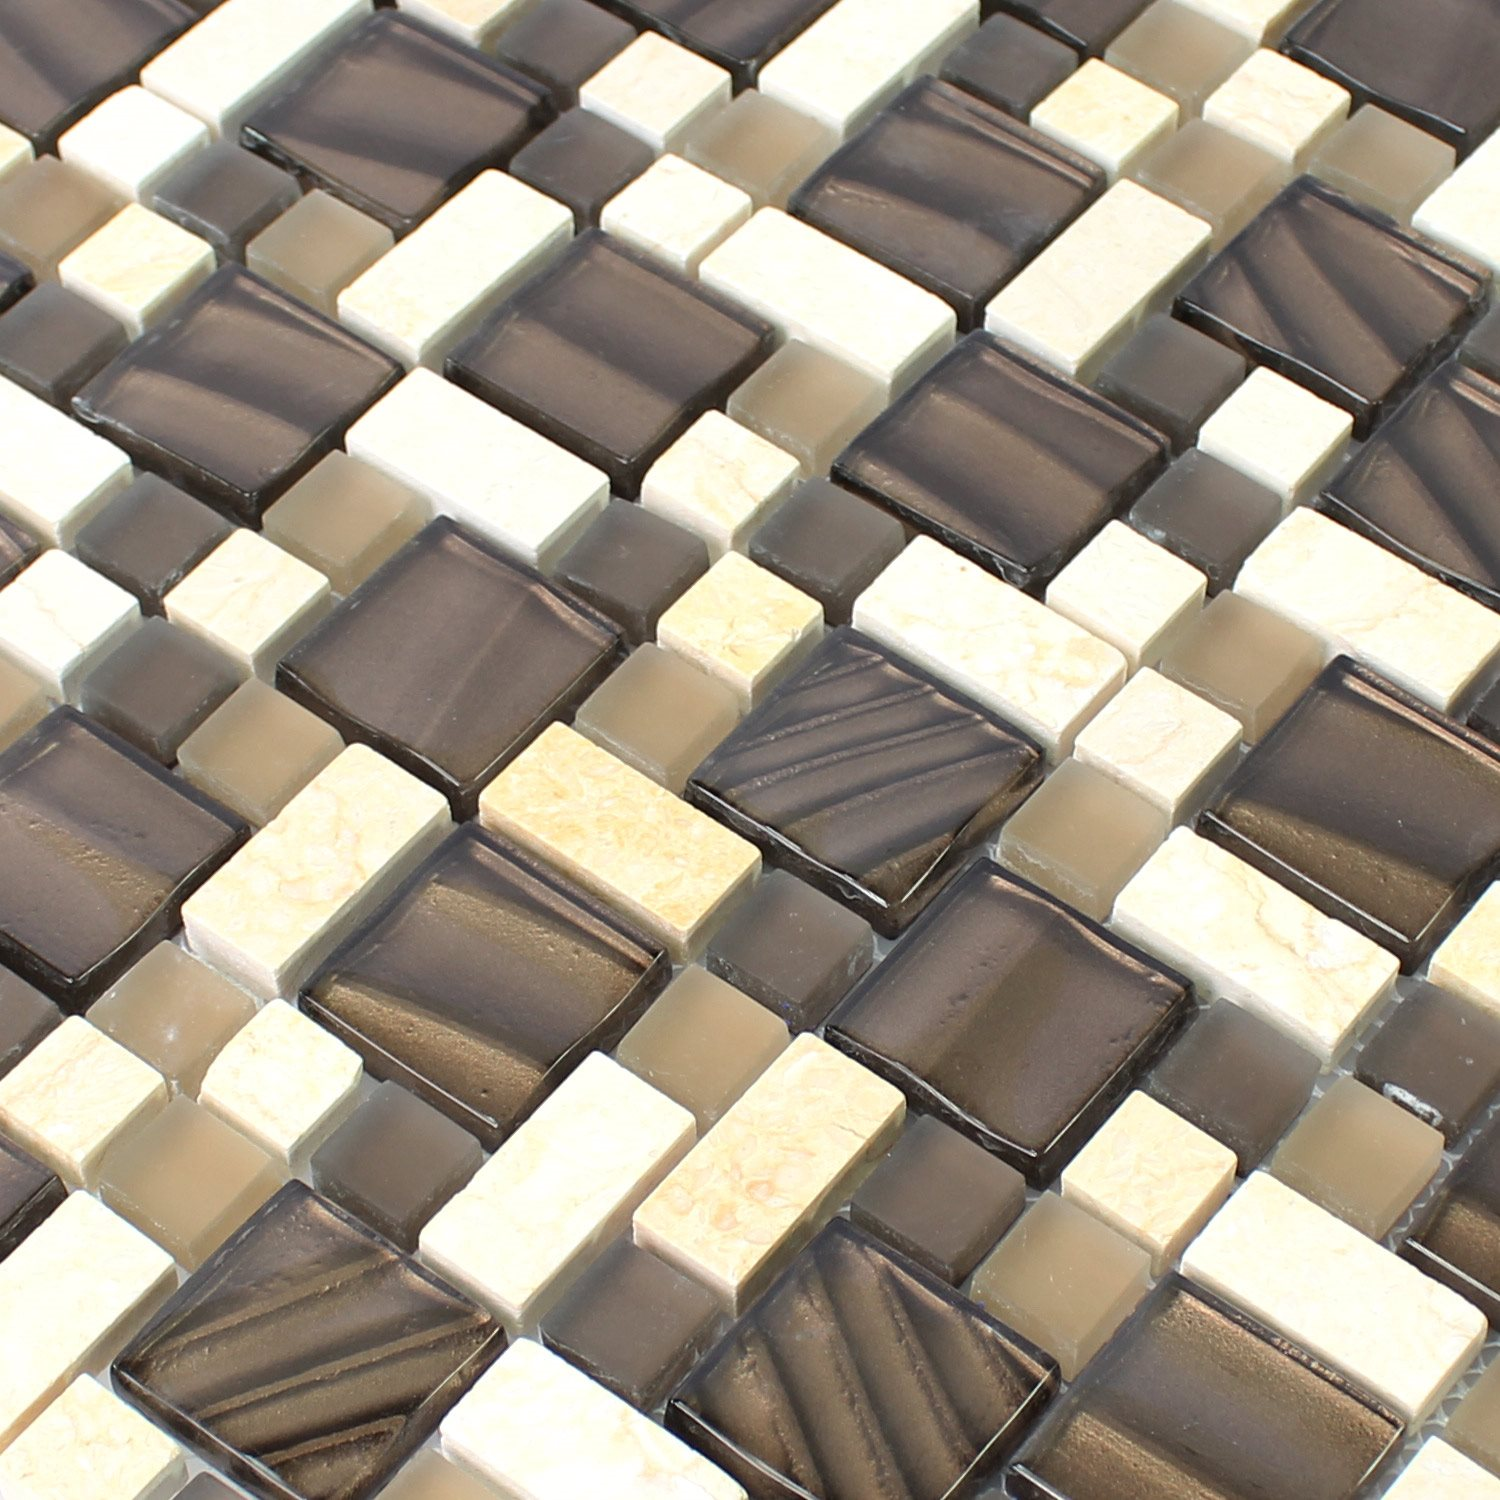 glass natural stone mosaic tiles brown beige br88501. Black Bedroom Furniture Sets. Home Design Ideas